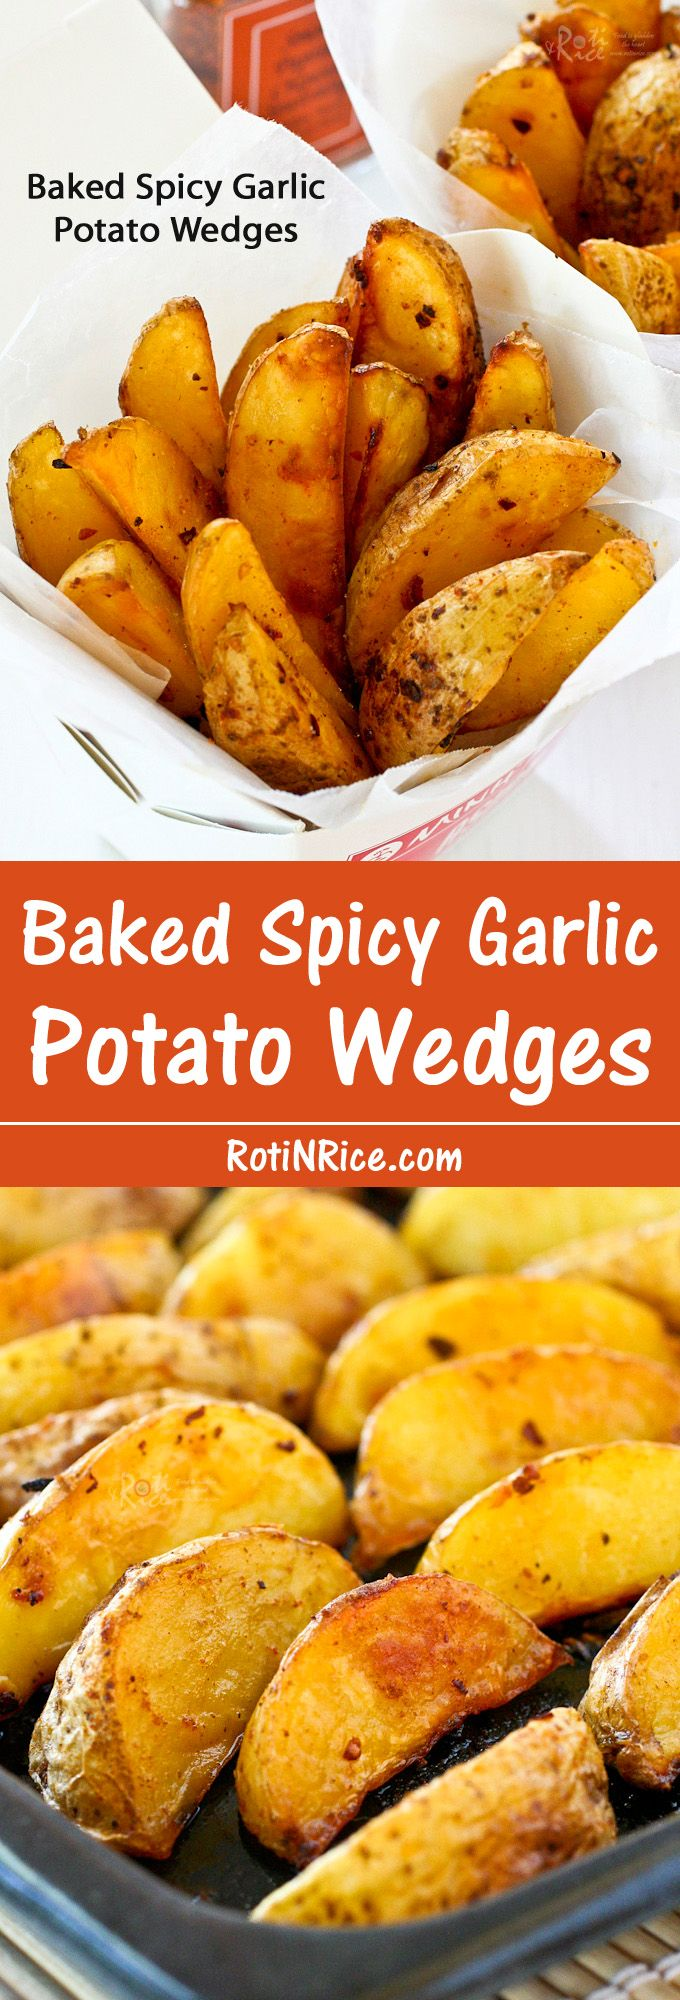 Delicious Baked Spicy Garlic Potato Wedges that are crunchy on the outside and soft on the inside with a slightly spicy and garlicky flavor. | RotiNRice.com